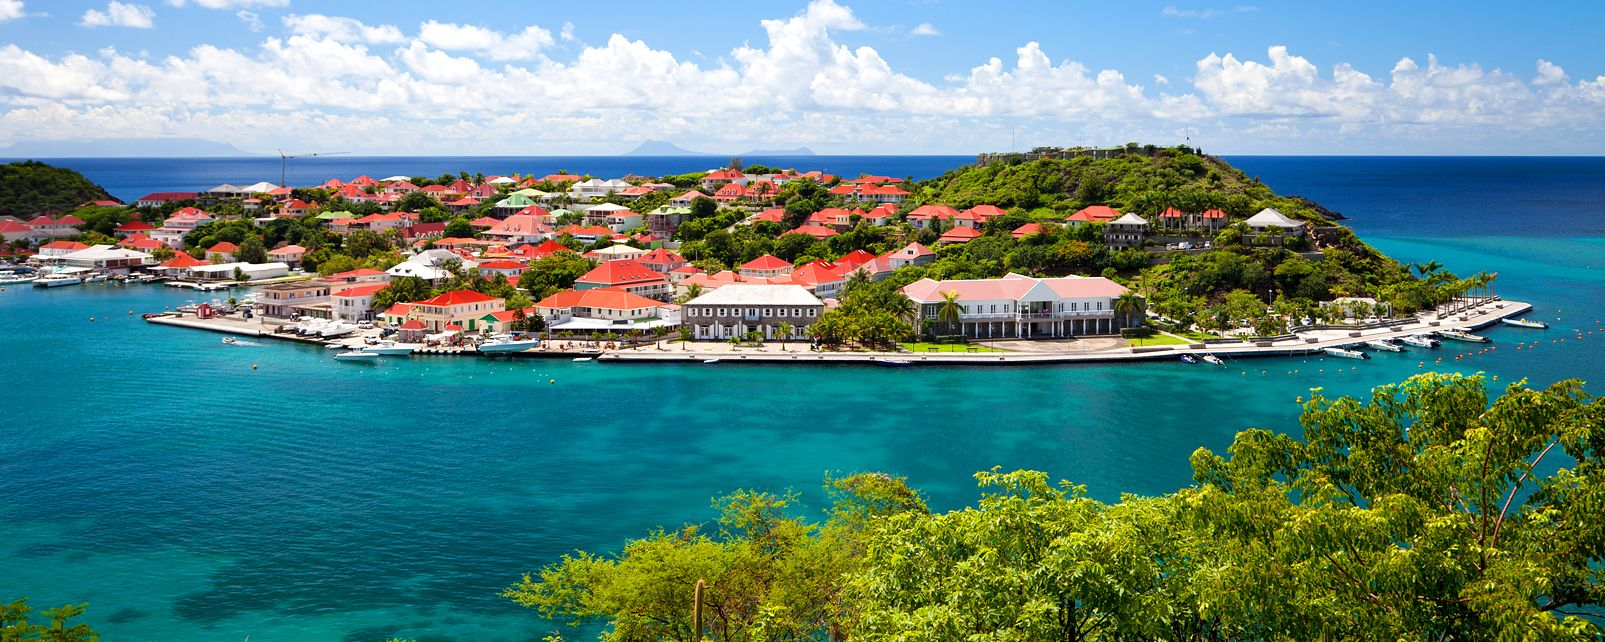 Gustavia Port Saint Barth 233 L 233 My Saint Barth 233 Lemy